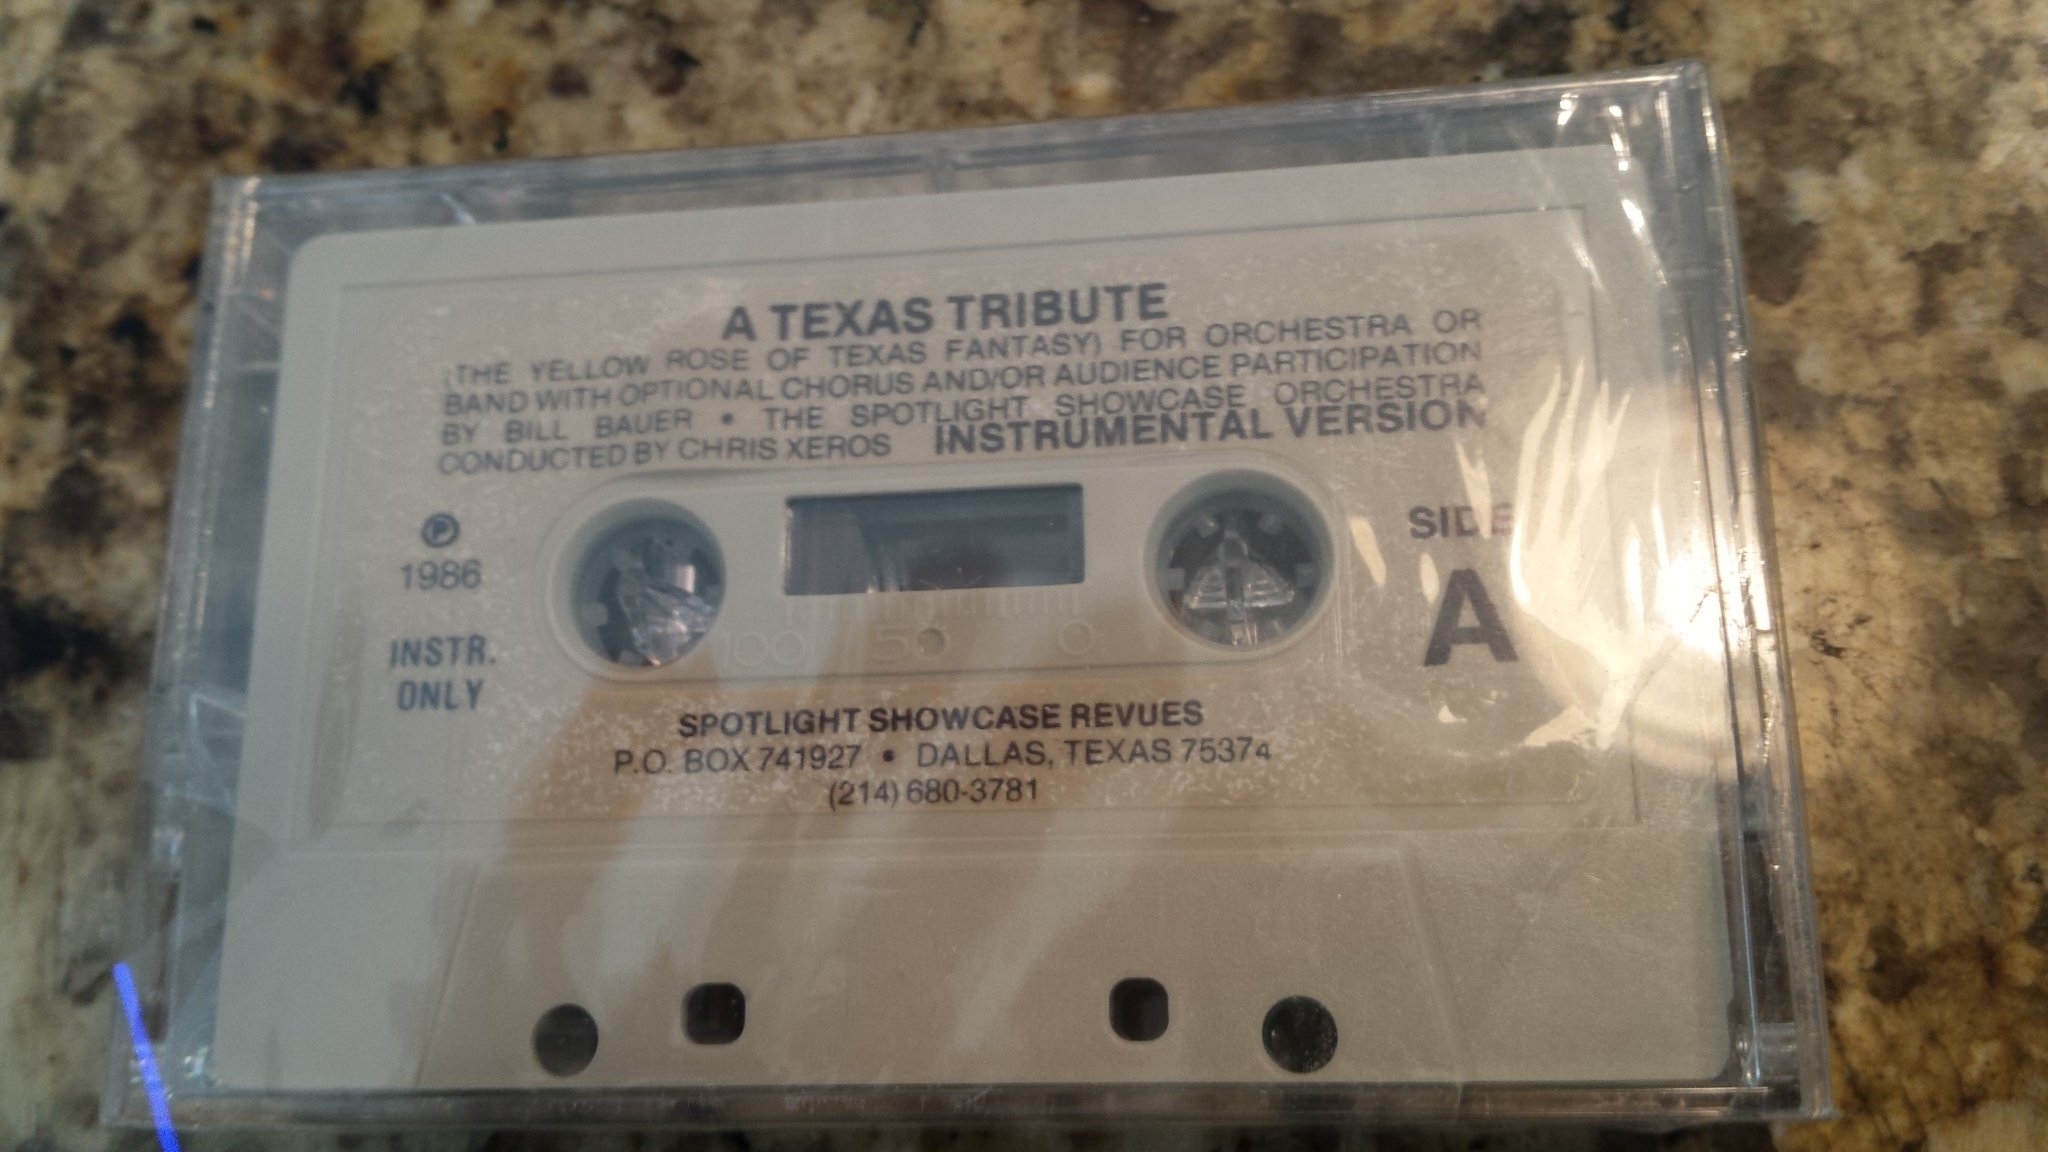 A Texas Tribute [Orchestral Yellow Rose of Texas Fantasy] with Voices, Audience Participation and Instrumental Versions 1986 by Spotlight Showcase